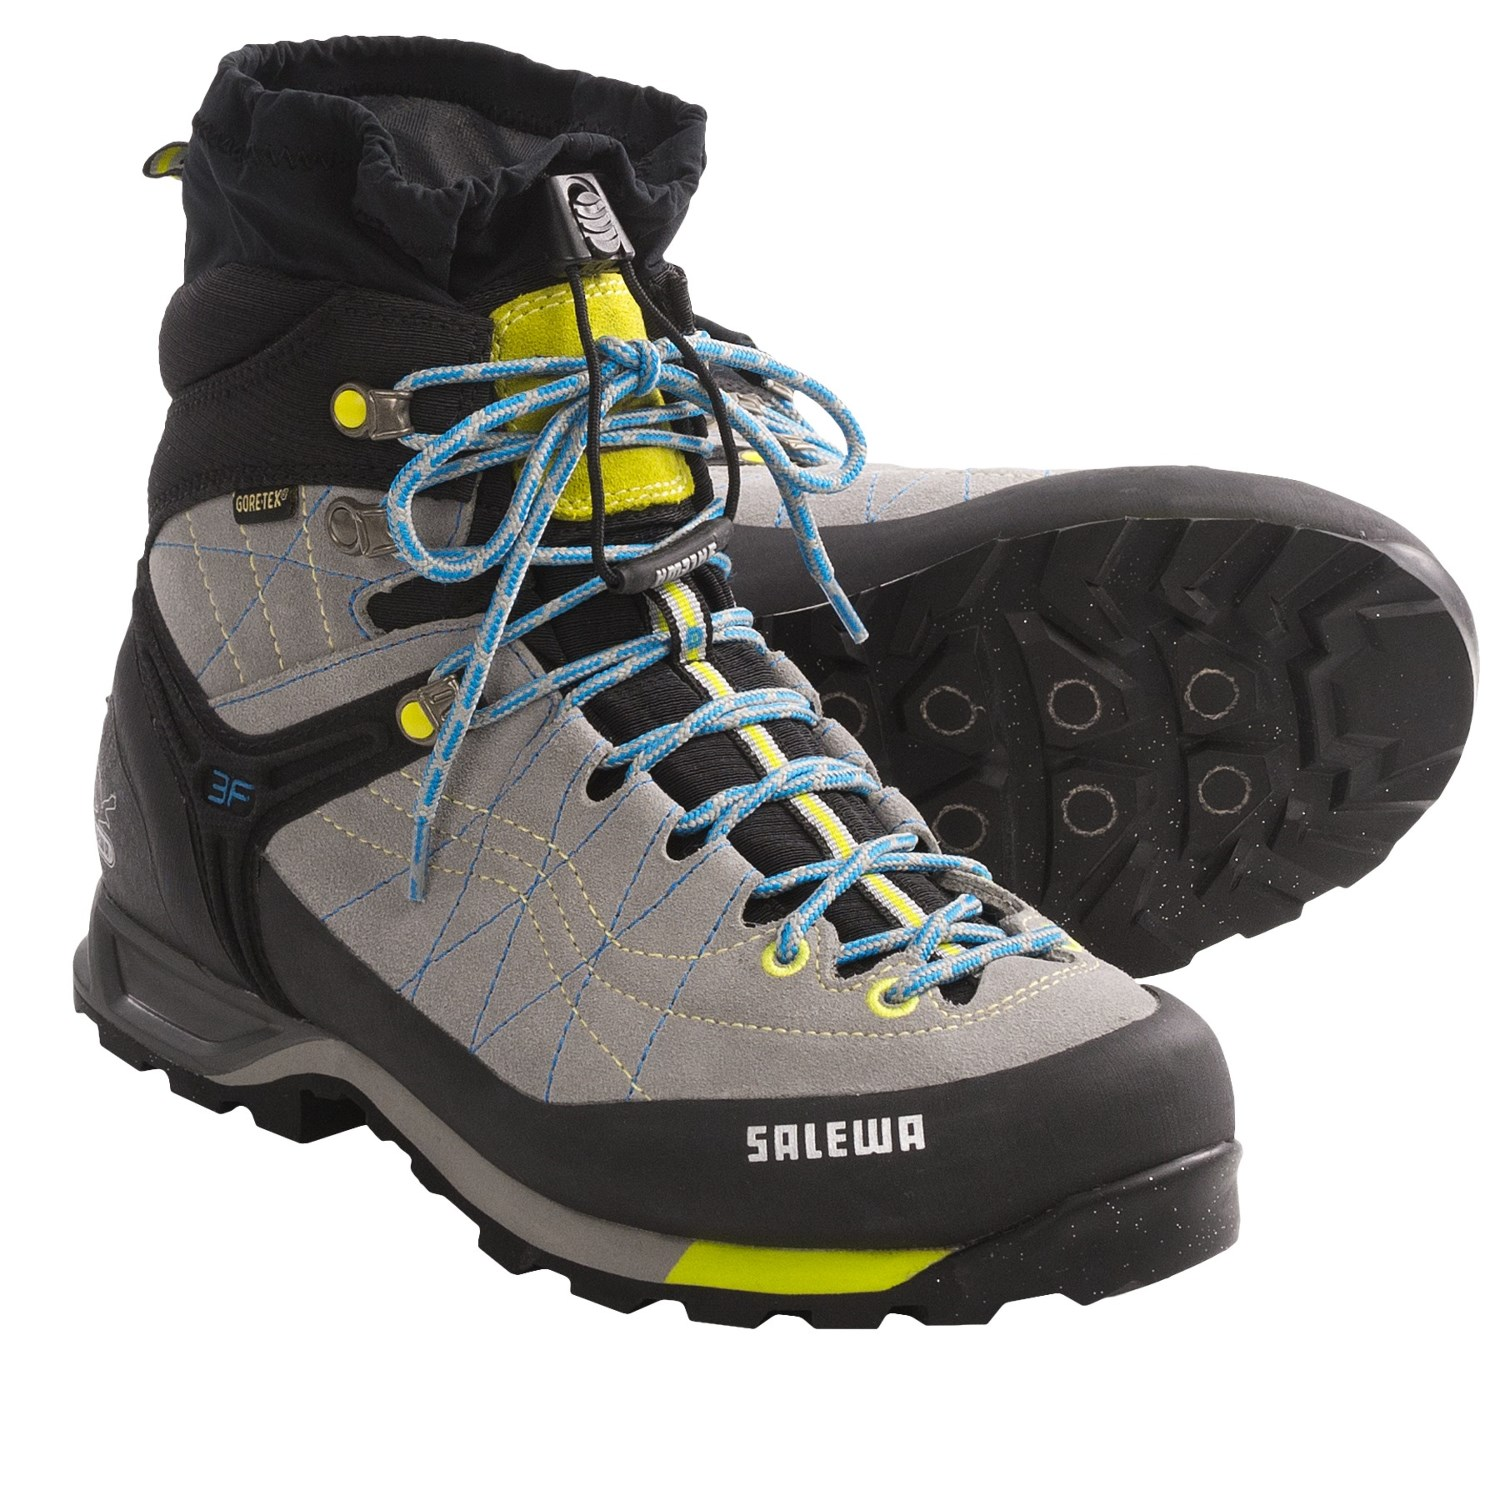 Snow Hiking Boots GWMfMkq4